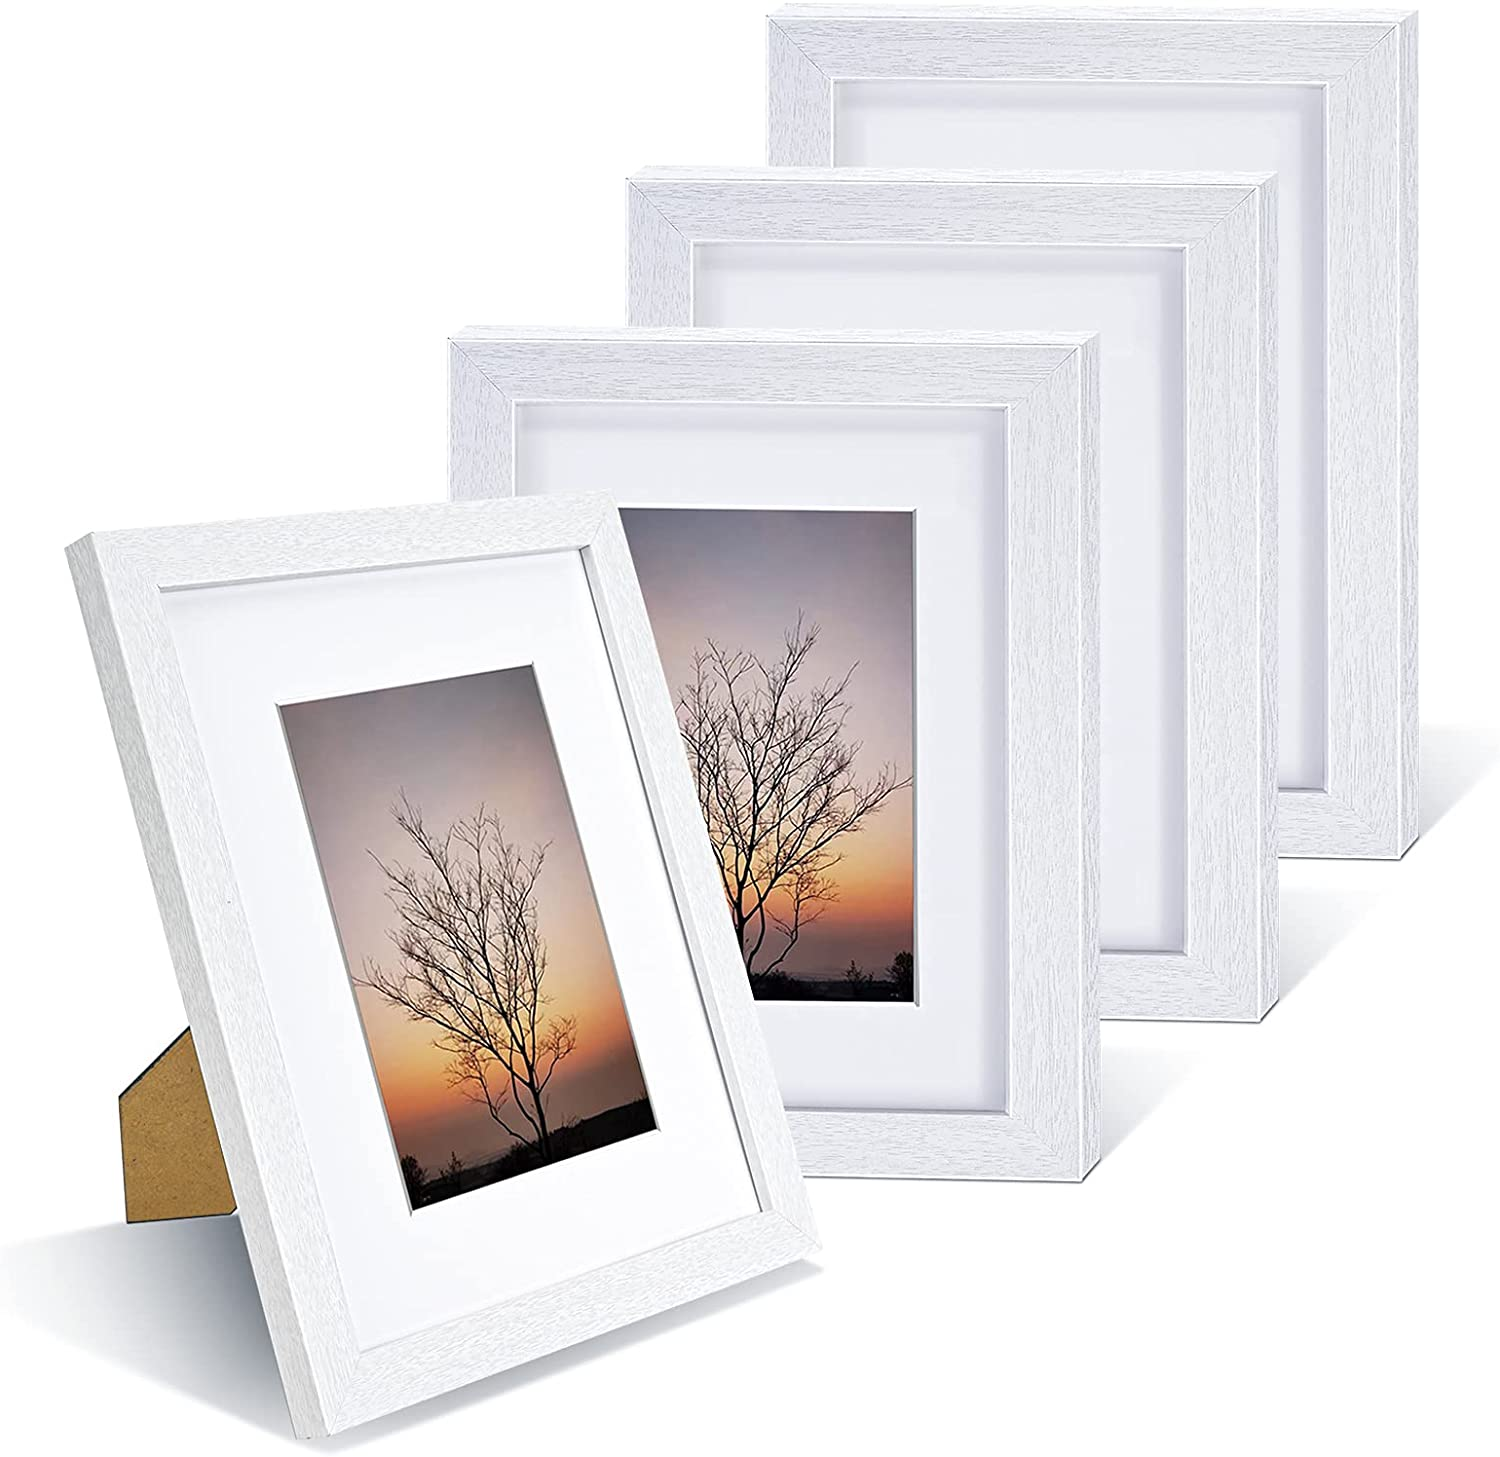 Nacial Max 50% OFF Picture Frames Austin Mall 8x10 inch Set 4 with Frame Photo White of